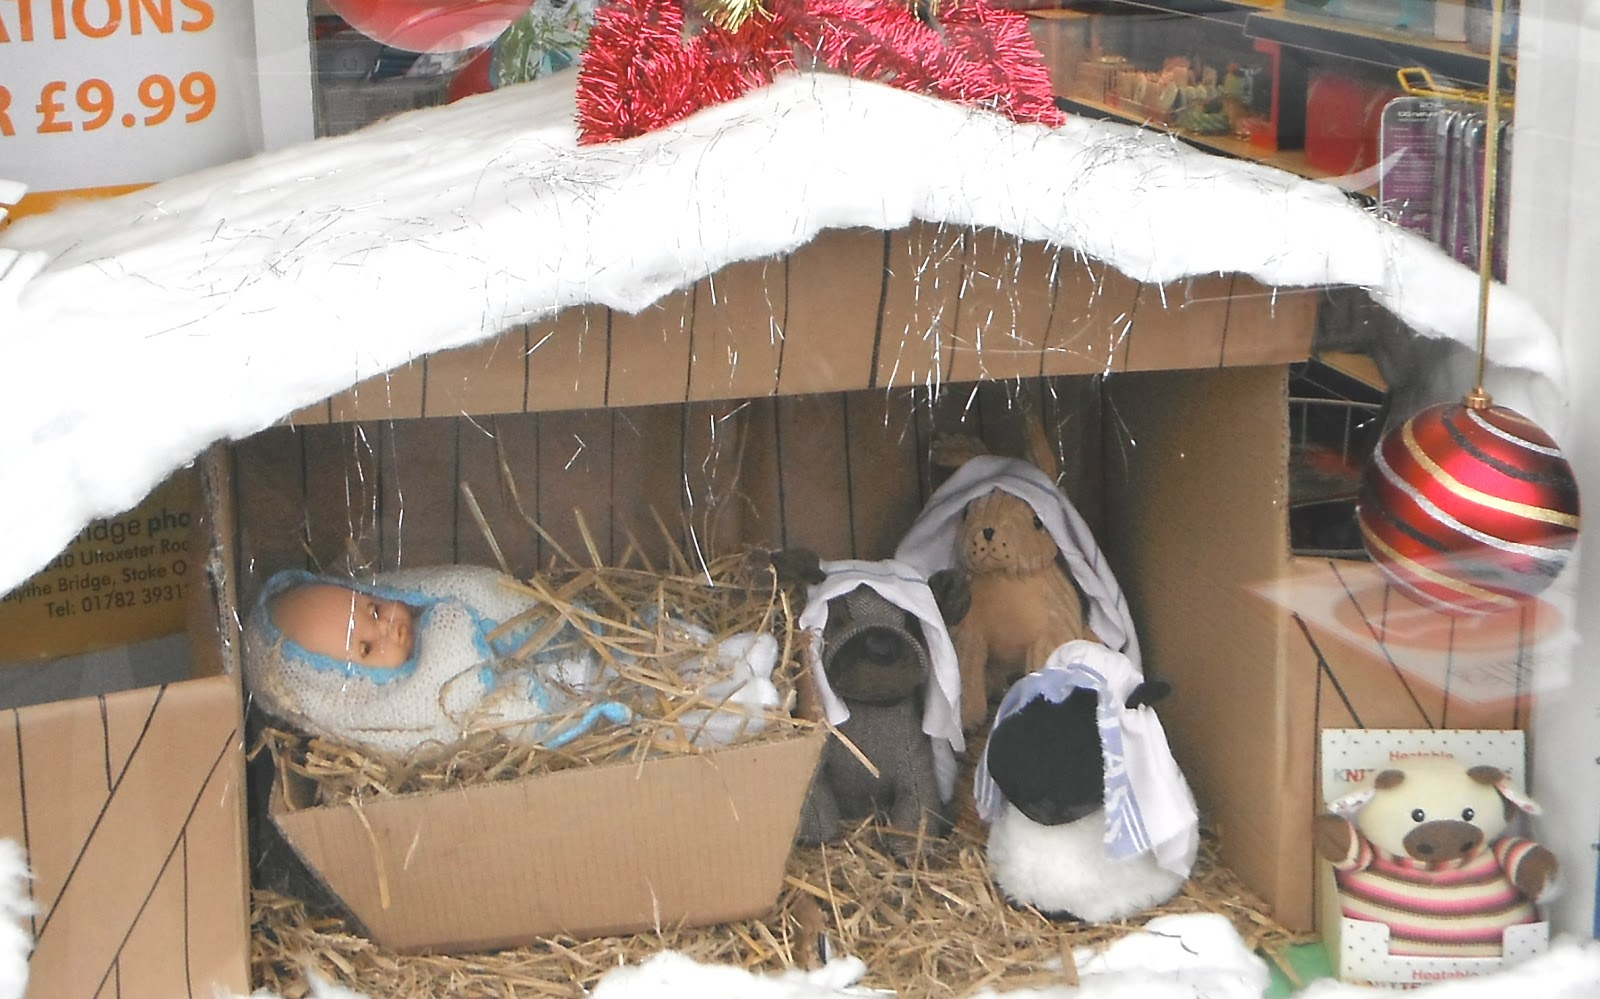 Nativity scene shop-window display